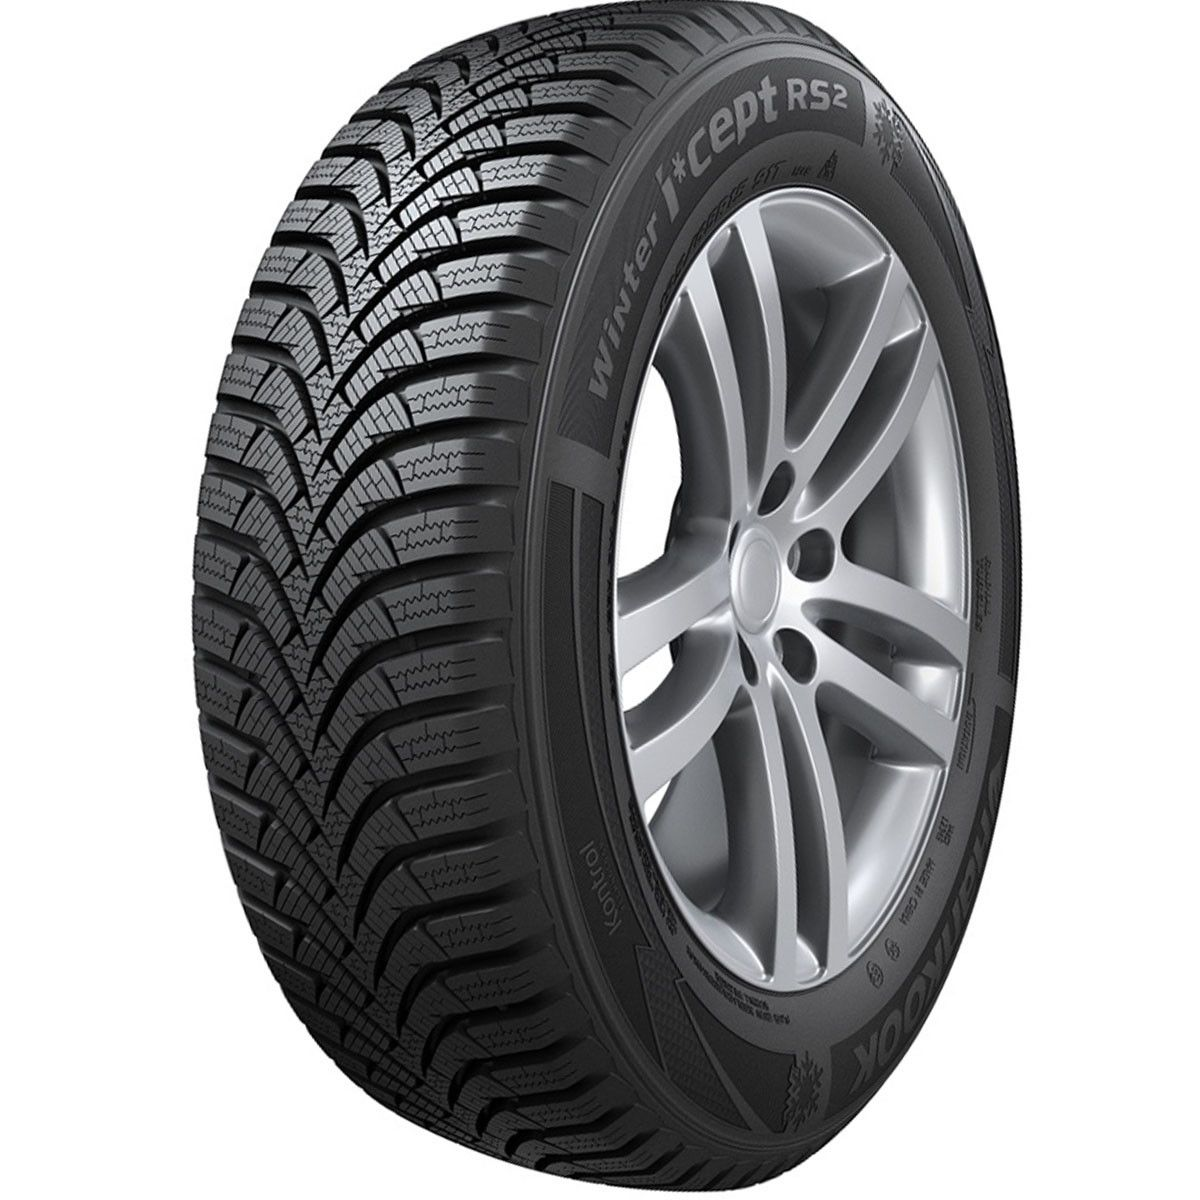 Anvelopa Iarna Hankook RS 2 W452 205/55R16 91T